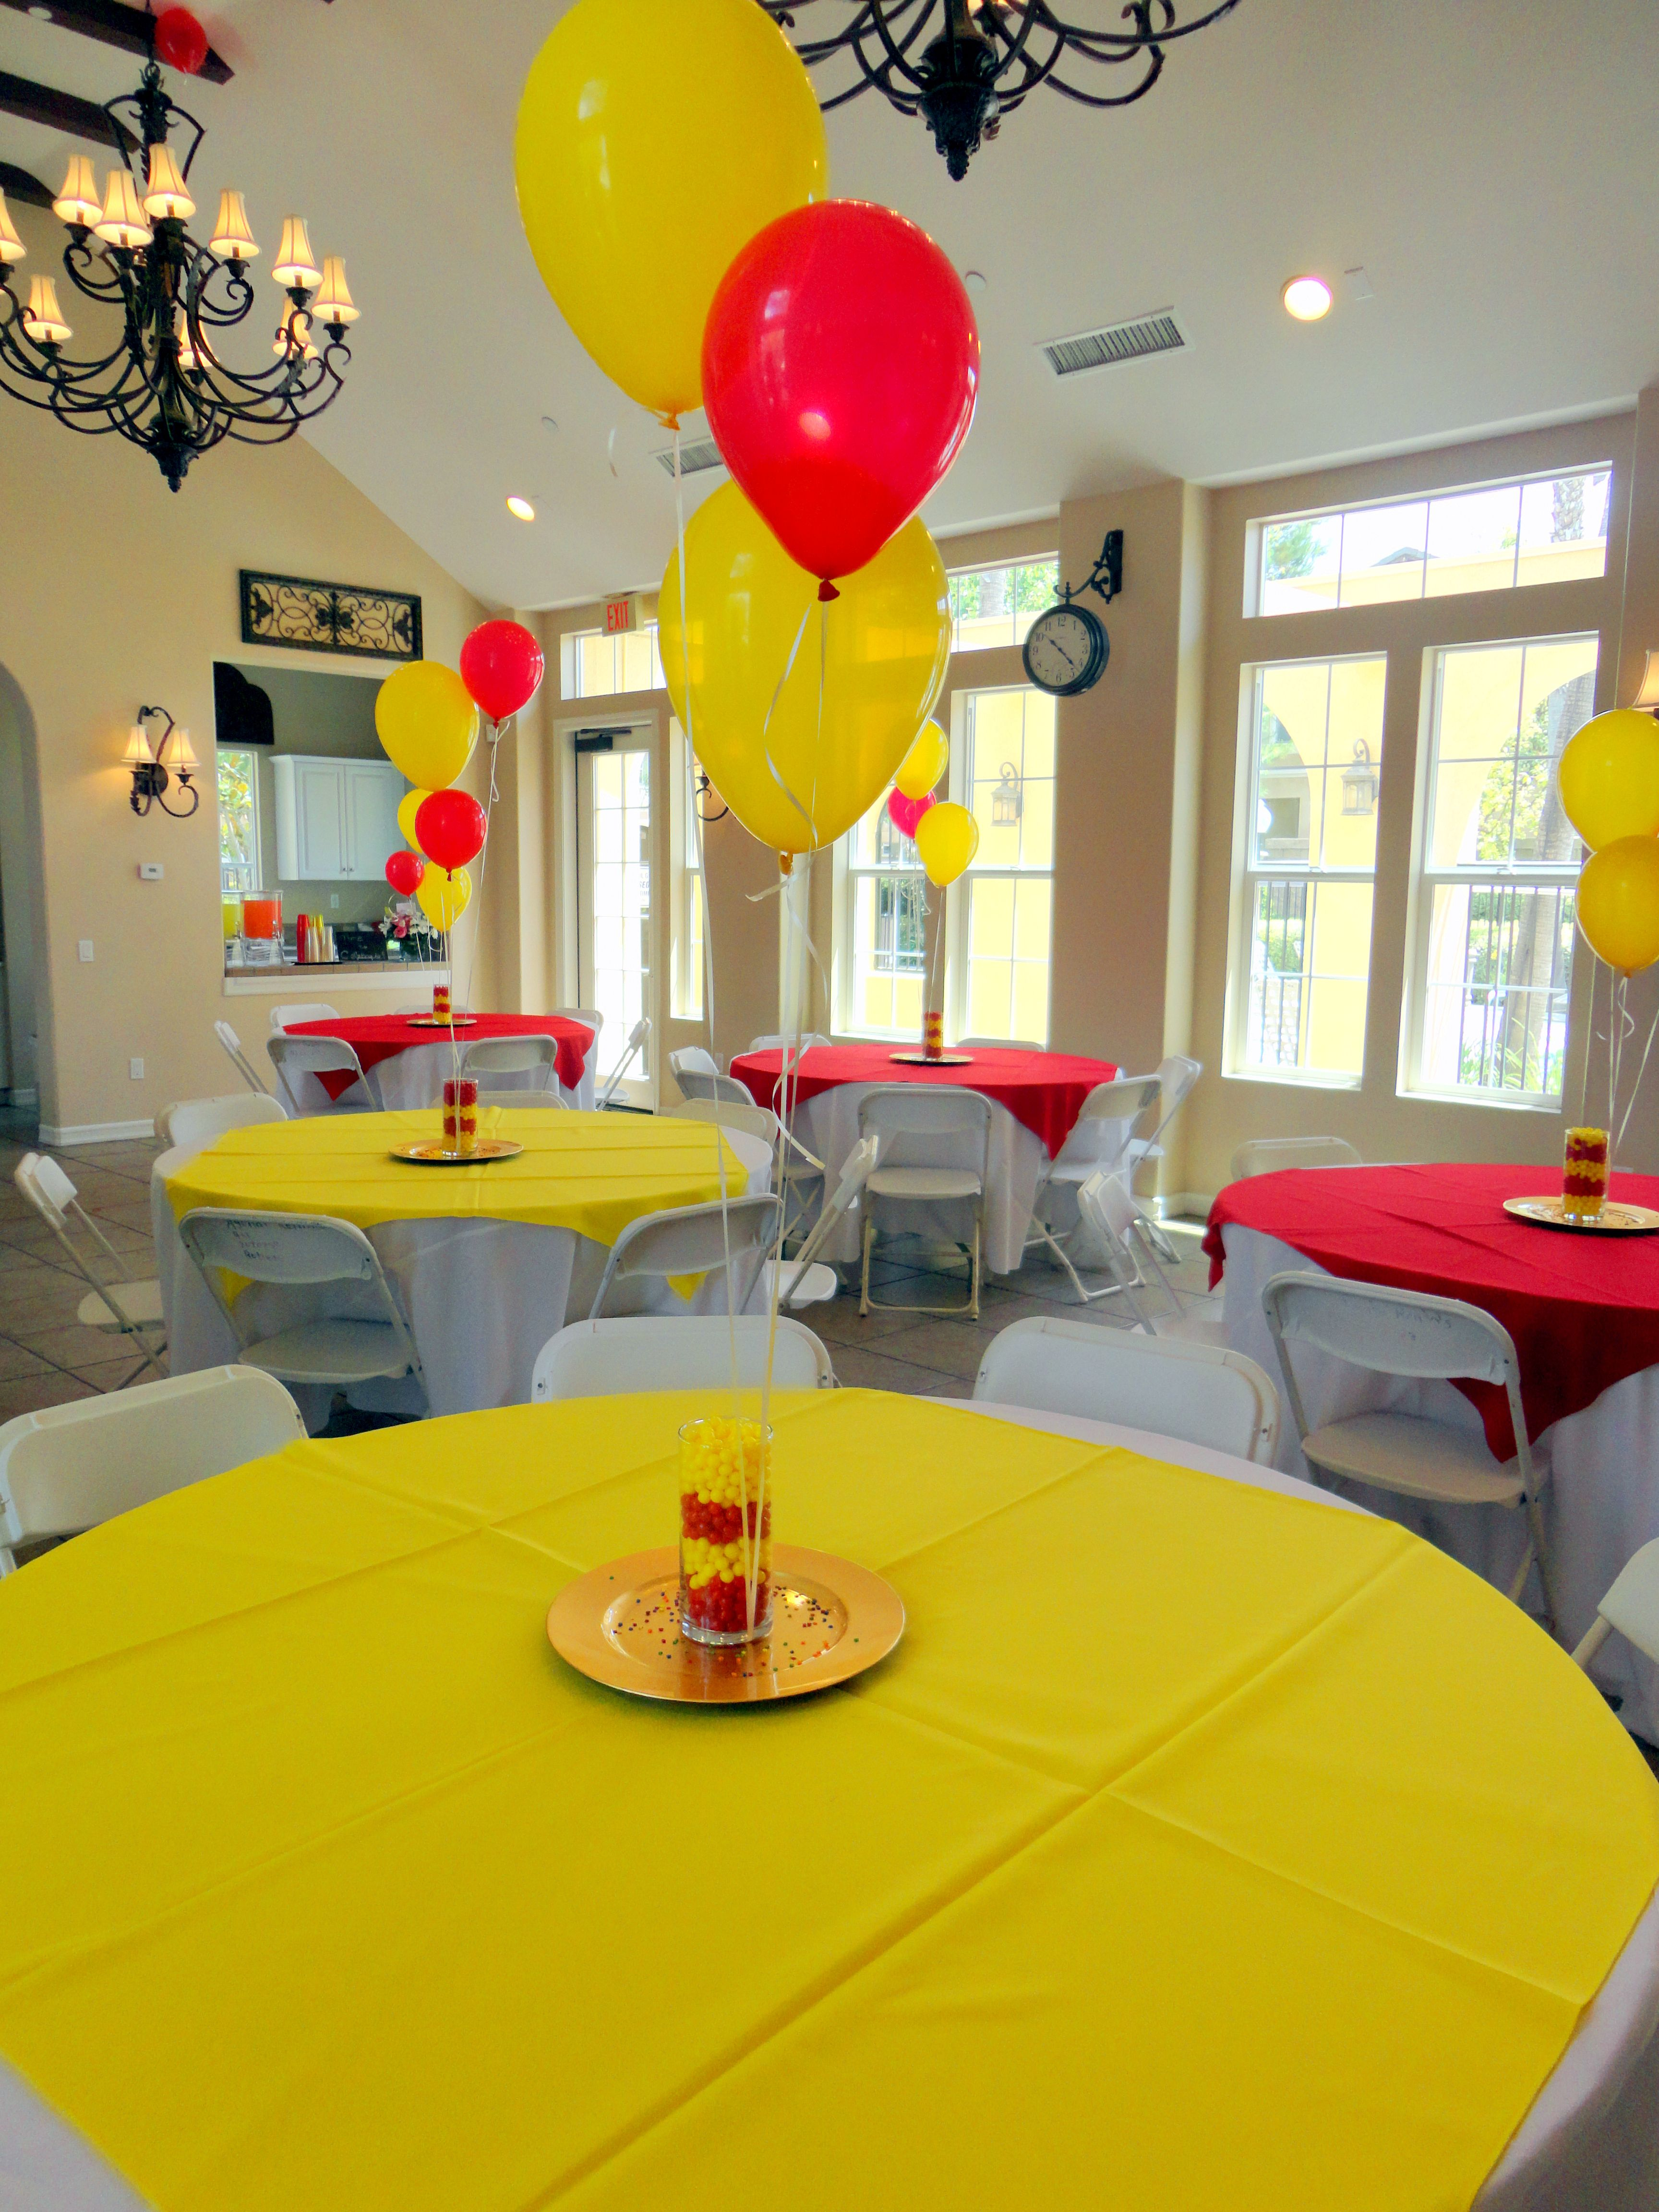 Alternated red and yellow table cloth overlays